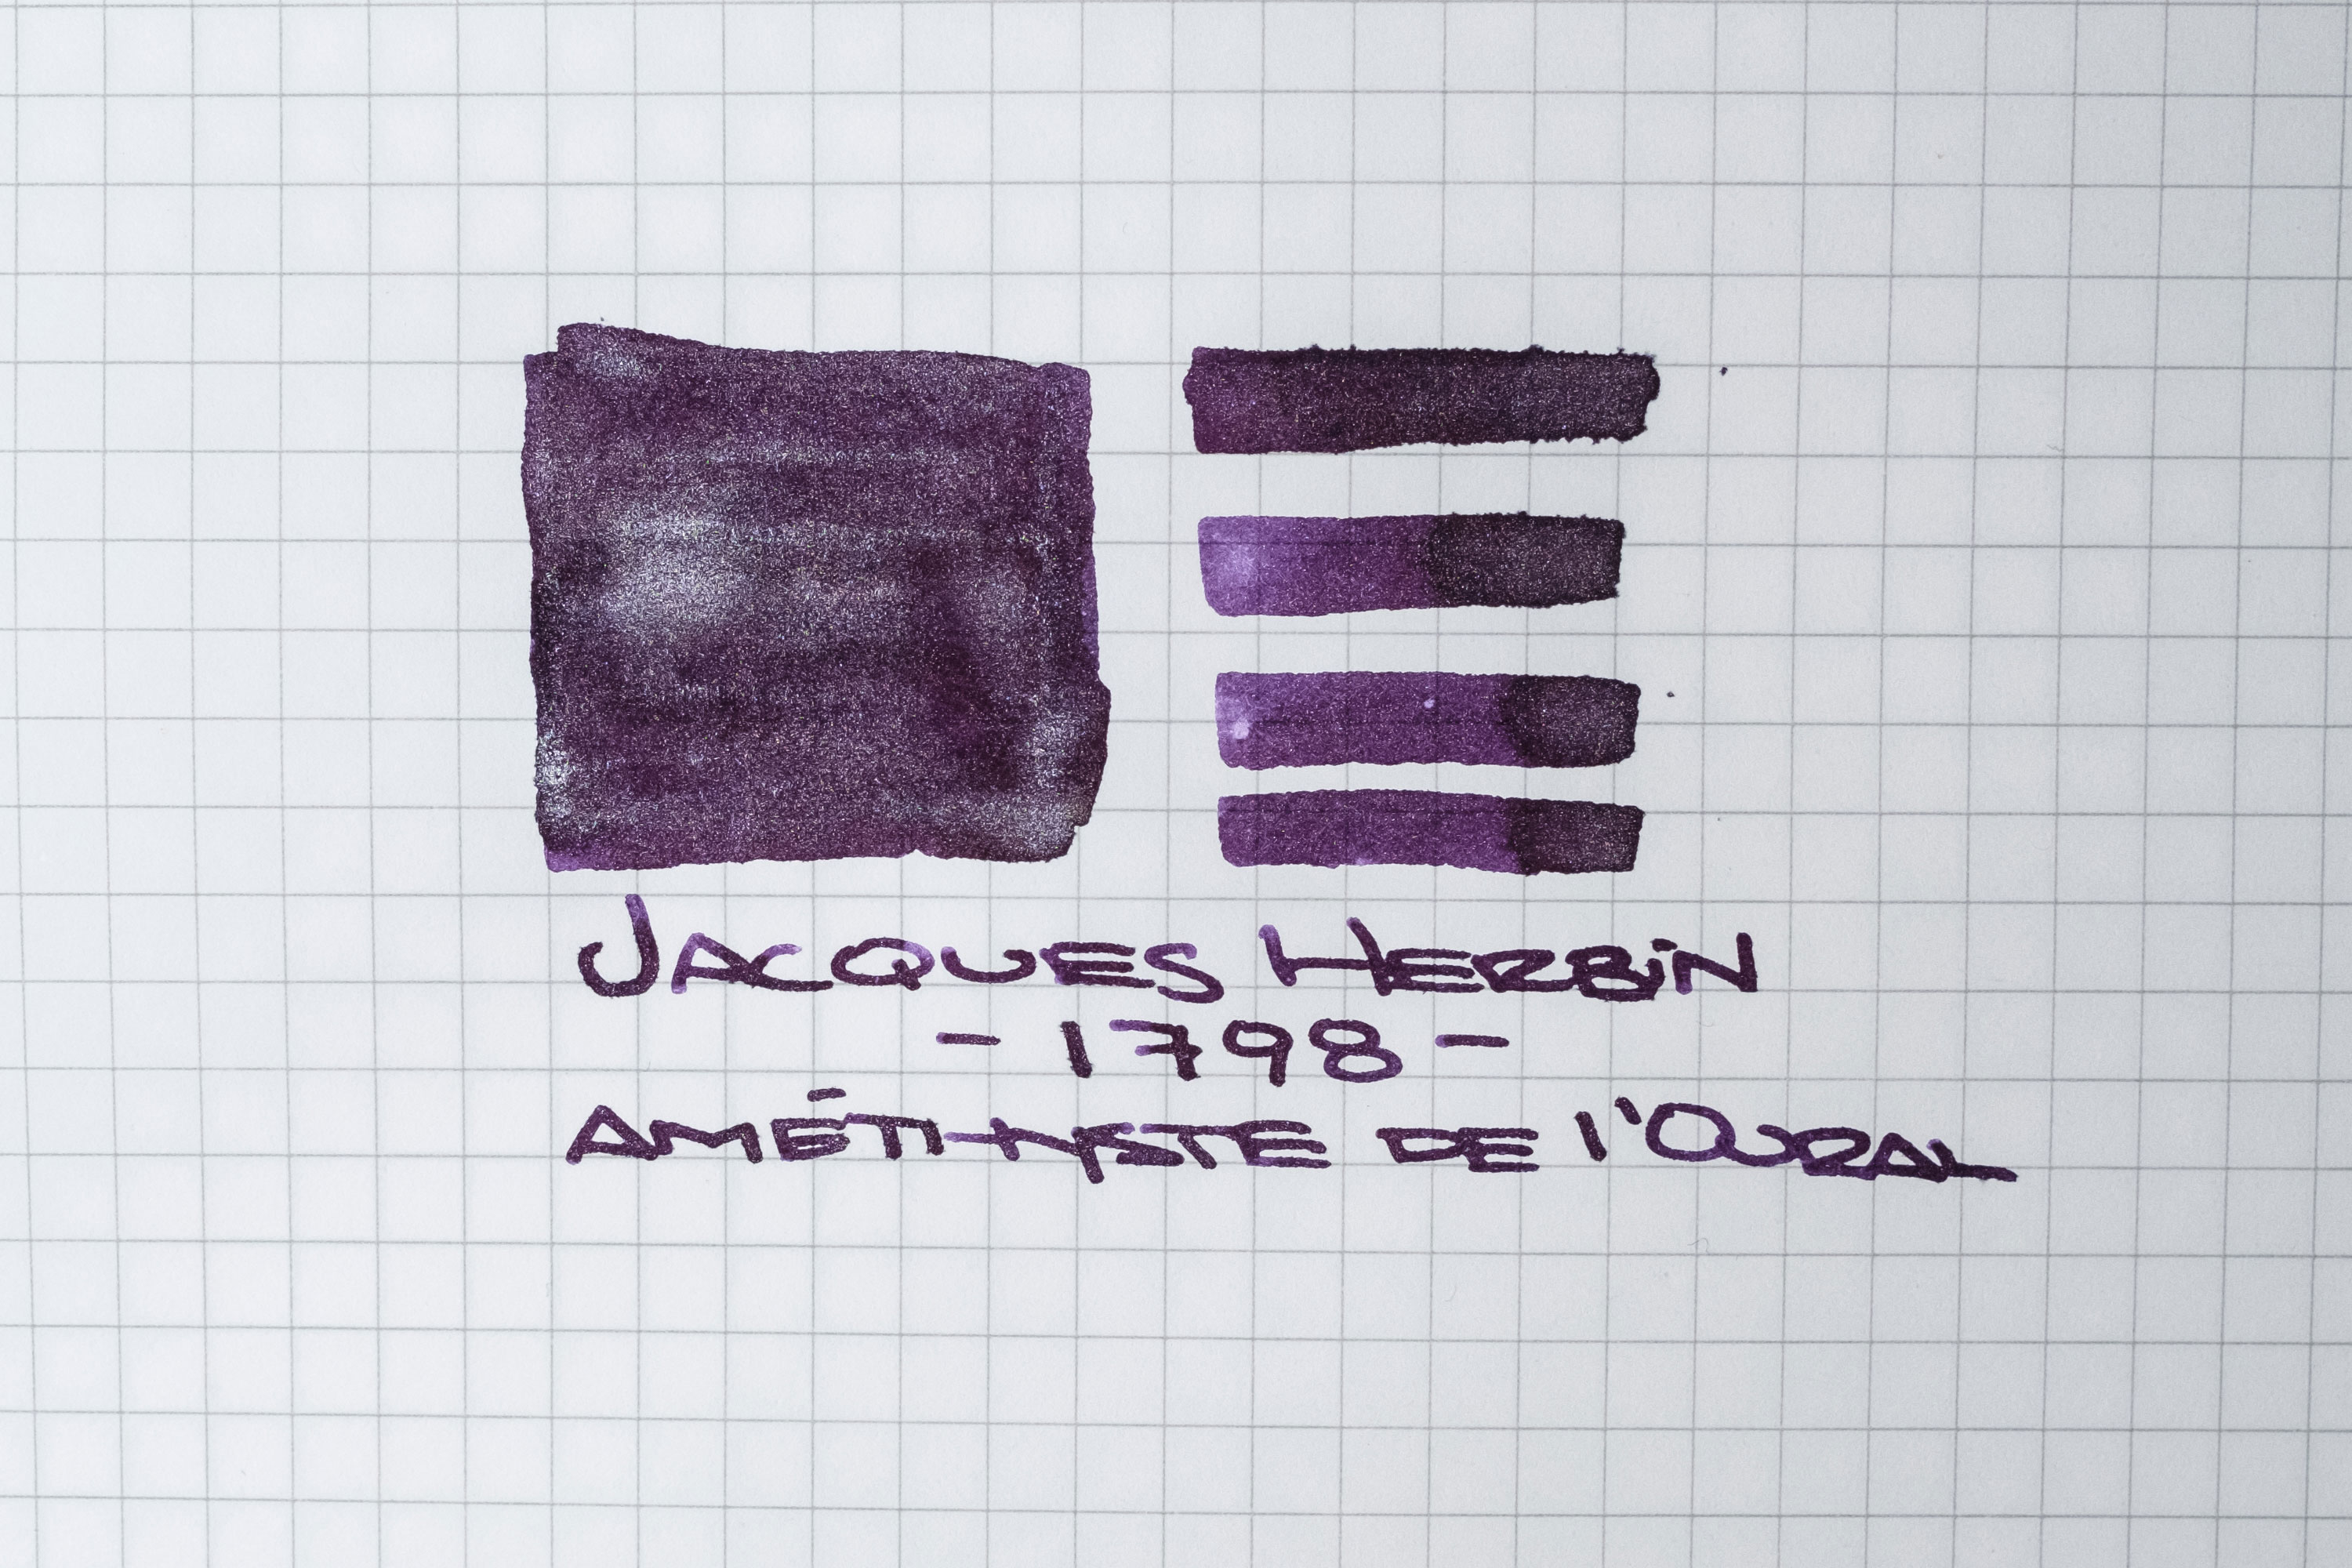 Jacques Herbin 1798 Amethyste de l'Oural fountian pen ink writing sample